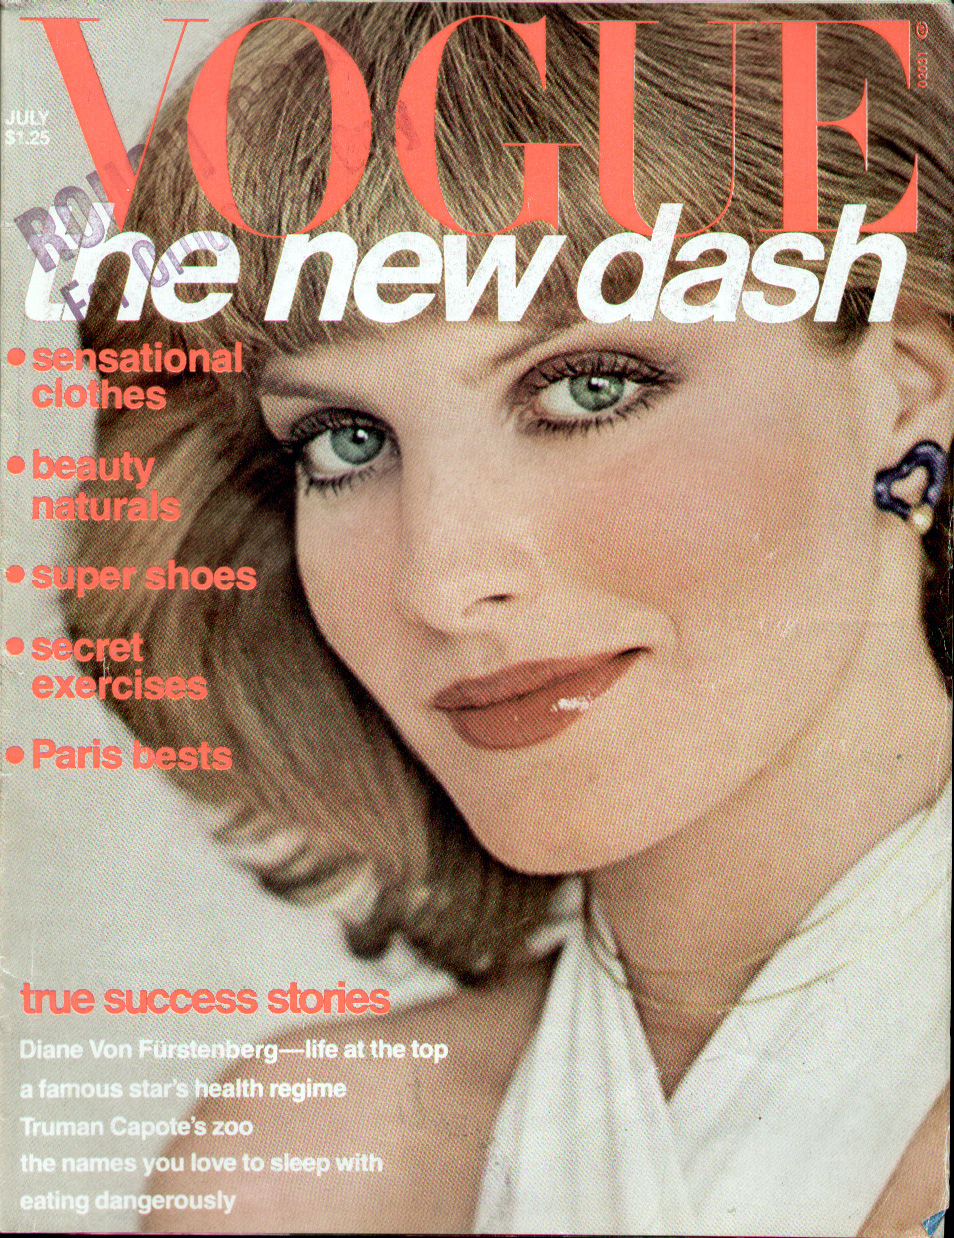 http://www.theplace2.ru/archive/rene_russo/img/rene_russo_vogue_jul.jpg